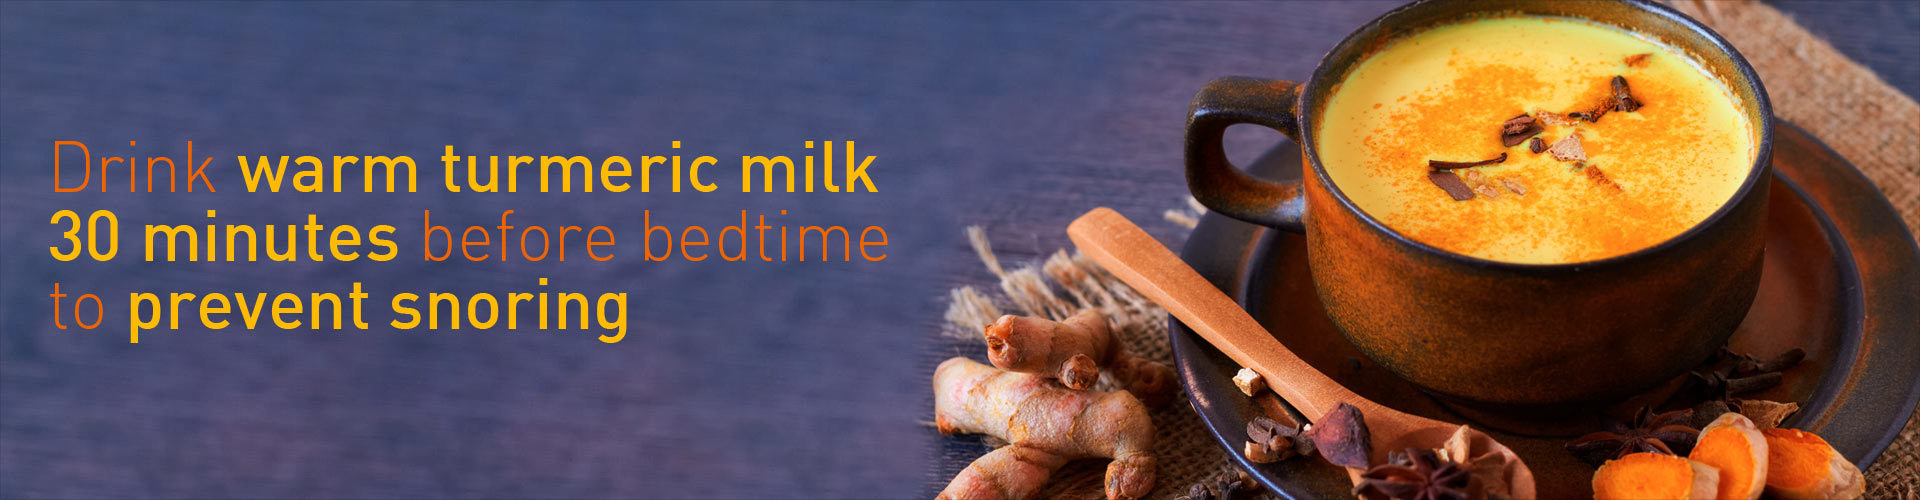 Drink warm turmeric milk 30 minutes before bedtime to prevent snoring